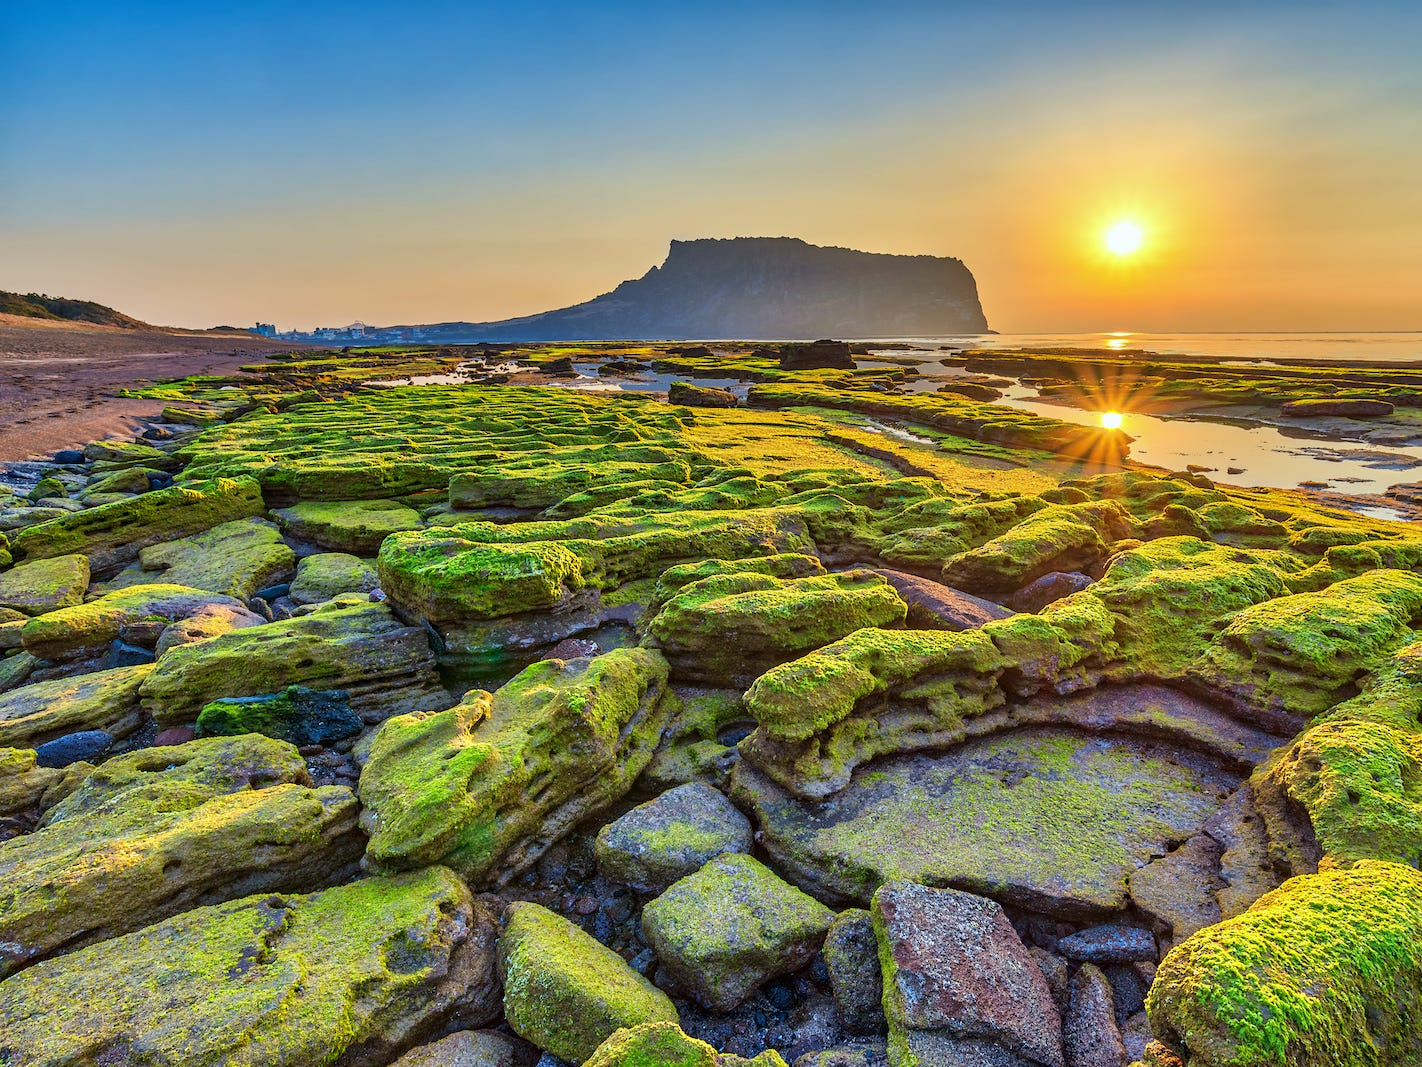 Slide 44 of 51: Jeju Island boasts South Korea's highest mountain, Hallasan, a dormant volcano that towers nearly 6,400 feet above sea level.The island is also known for its spectacular lava tubes (caves formed by cooling lava).